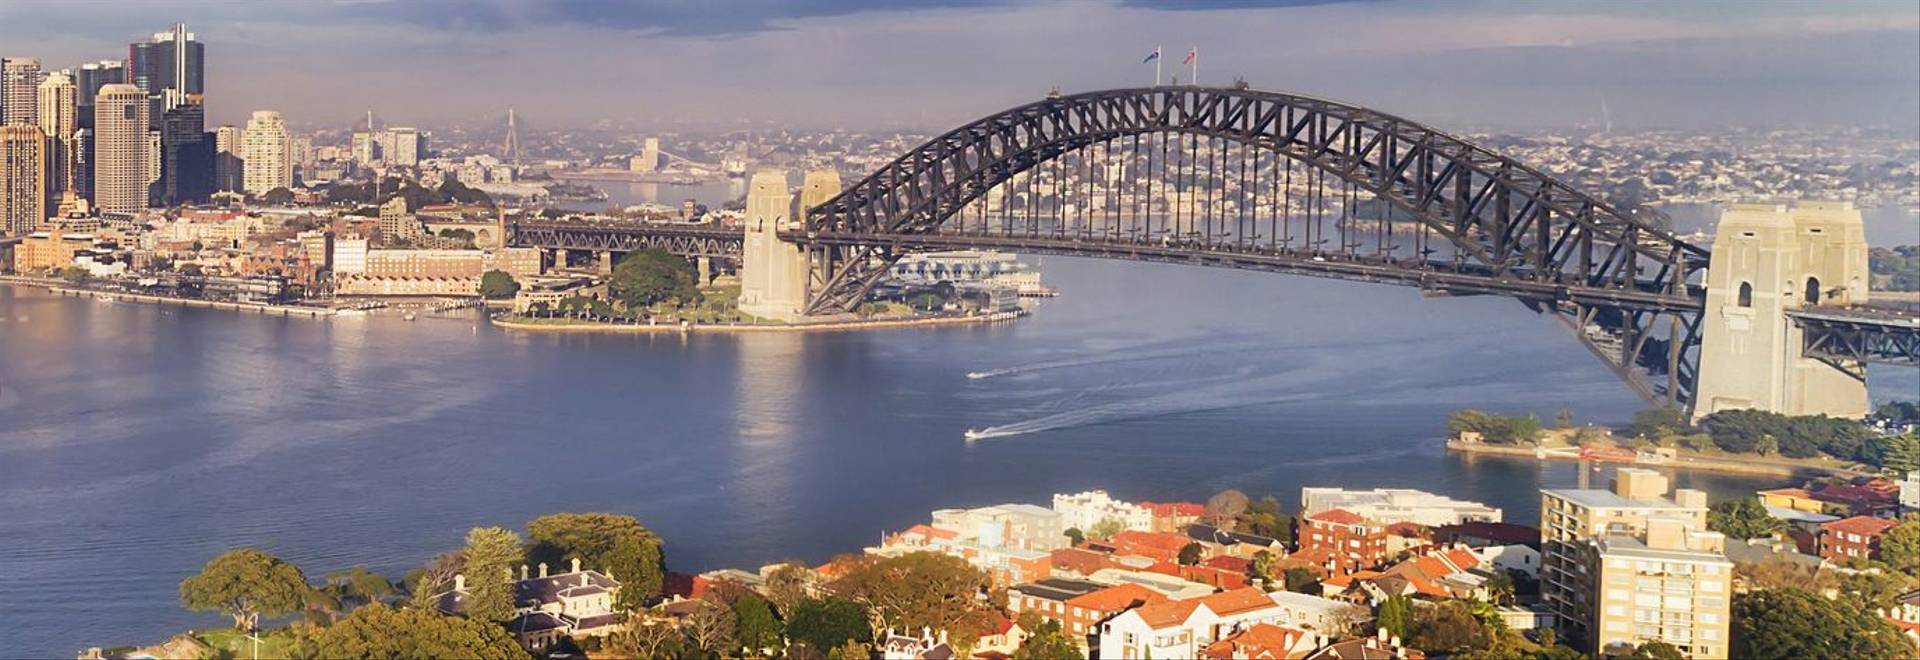 Quiet still earlier morning gentle sun light over Sydney city main landmarks around Harbour waters and shores between CBD an…